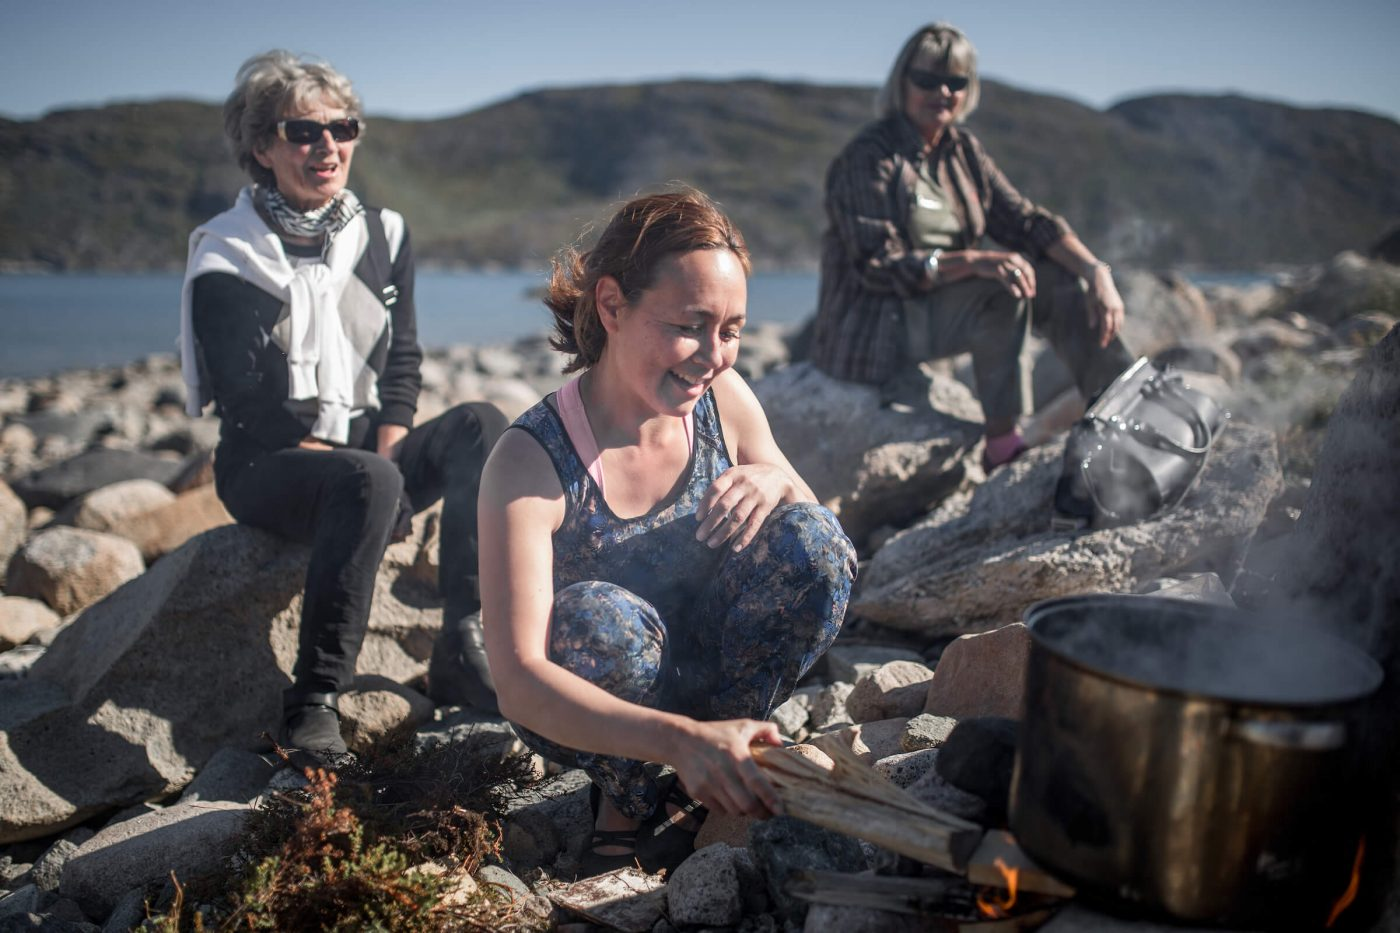 Cooking greenlandic food on open fire in Narsaq in South Greenland